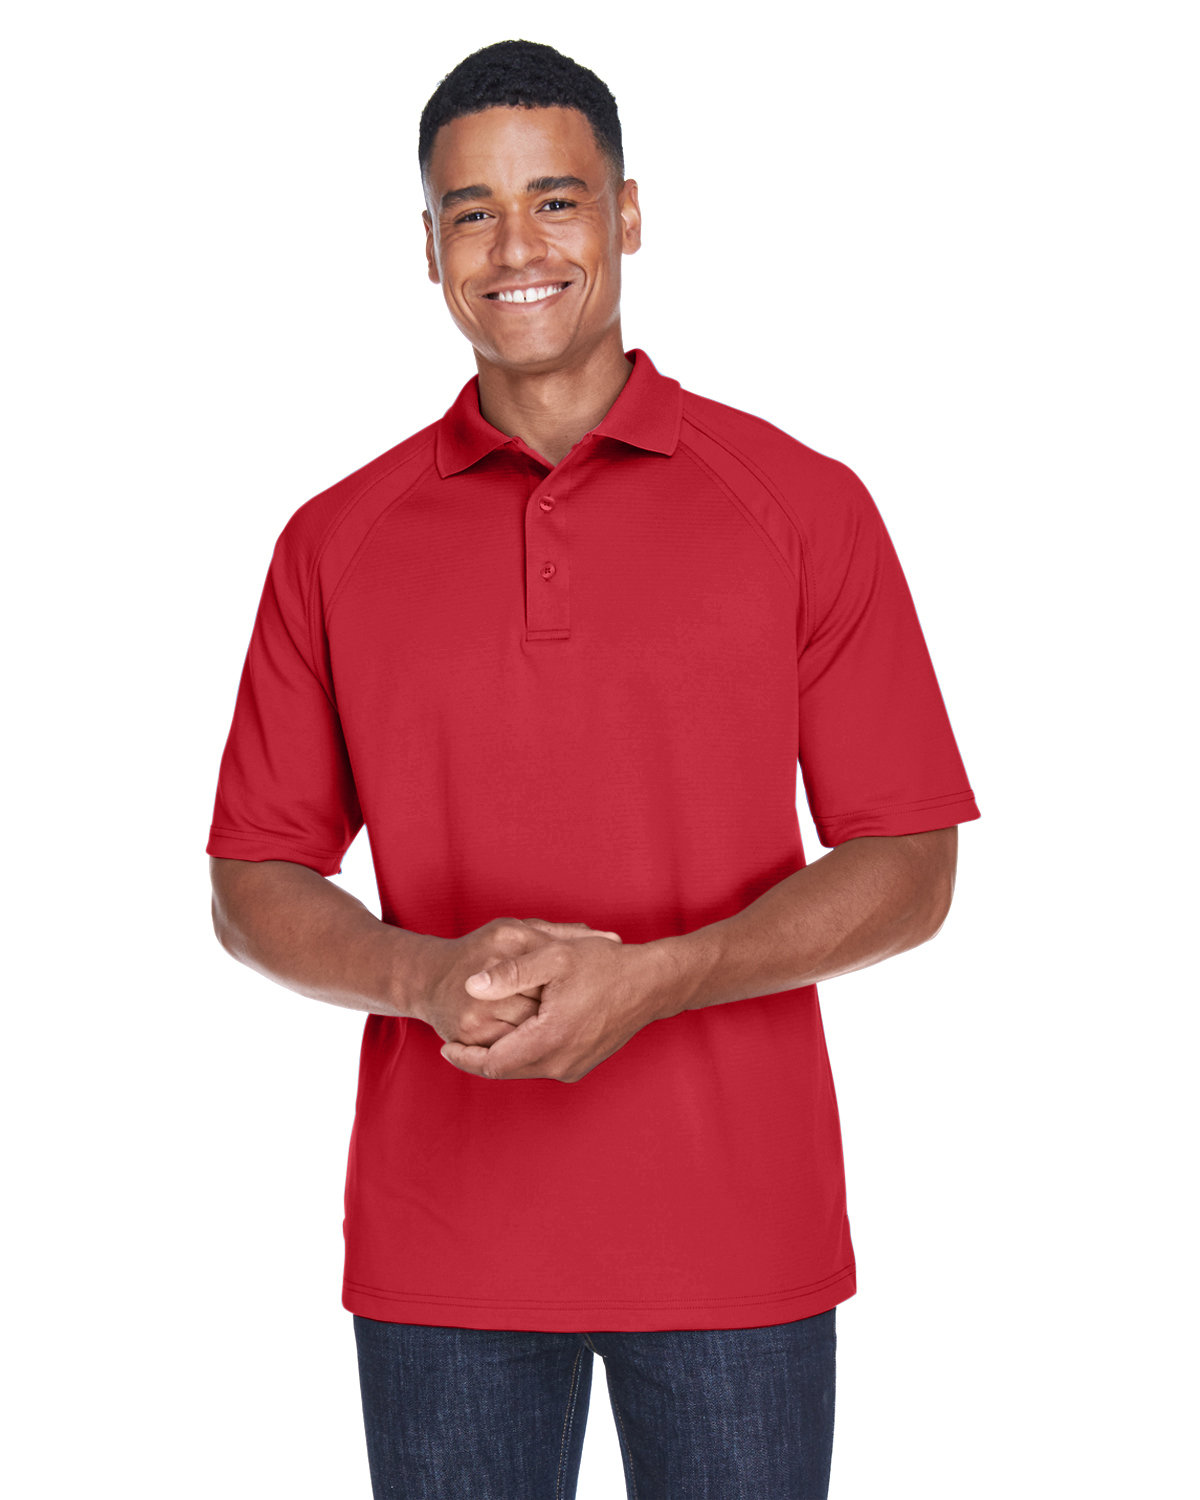 Extreme Men's Eperformance™ Ottoman Textured Polo CLASSIC RED